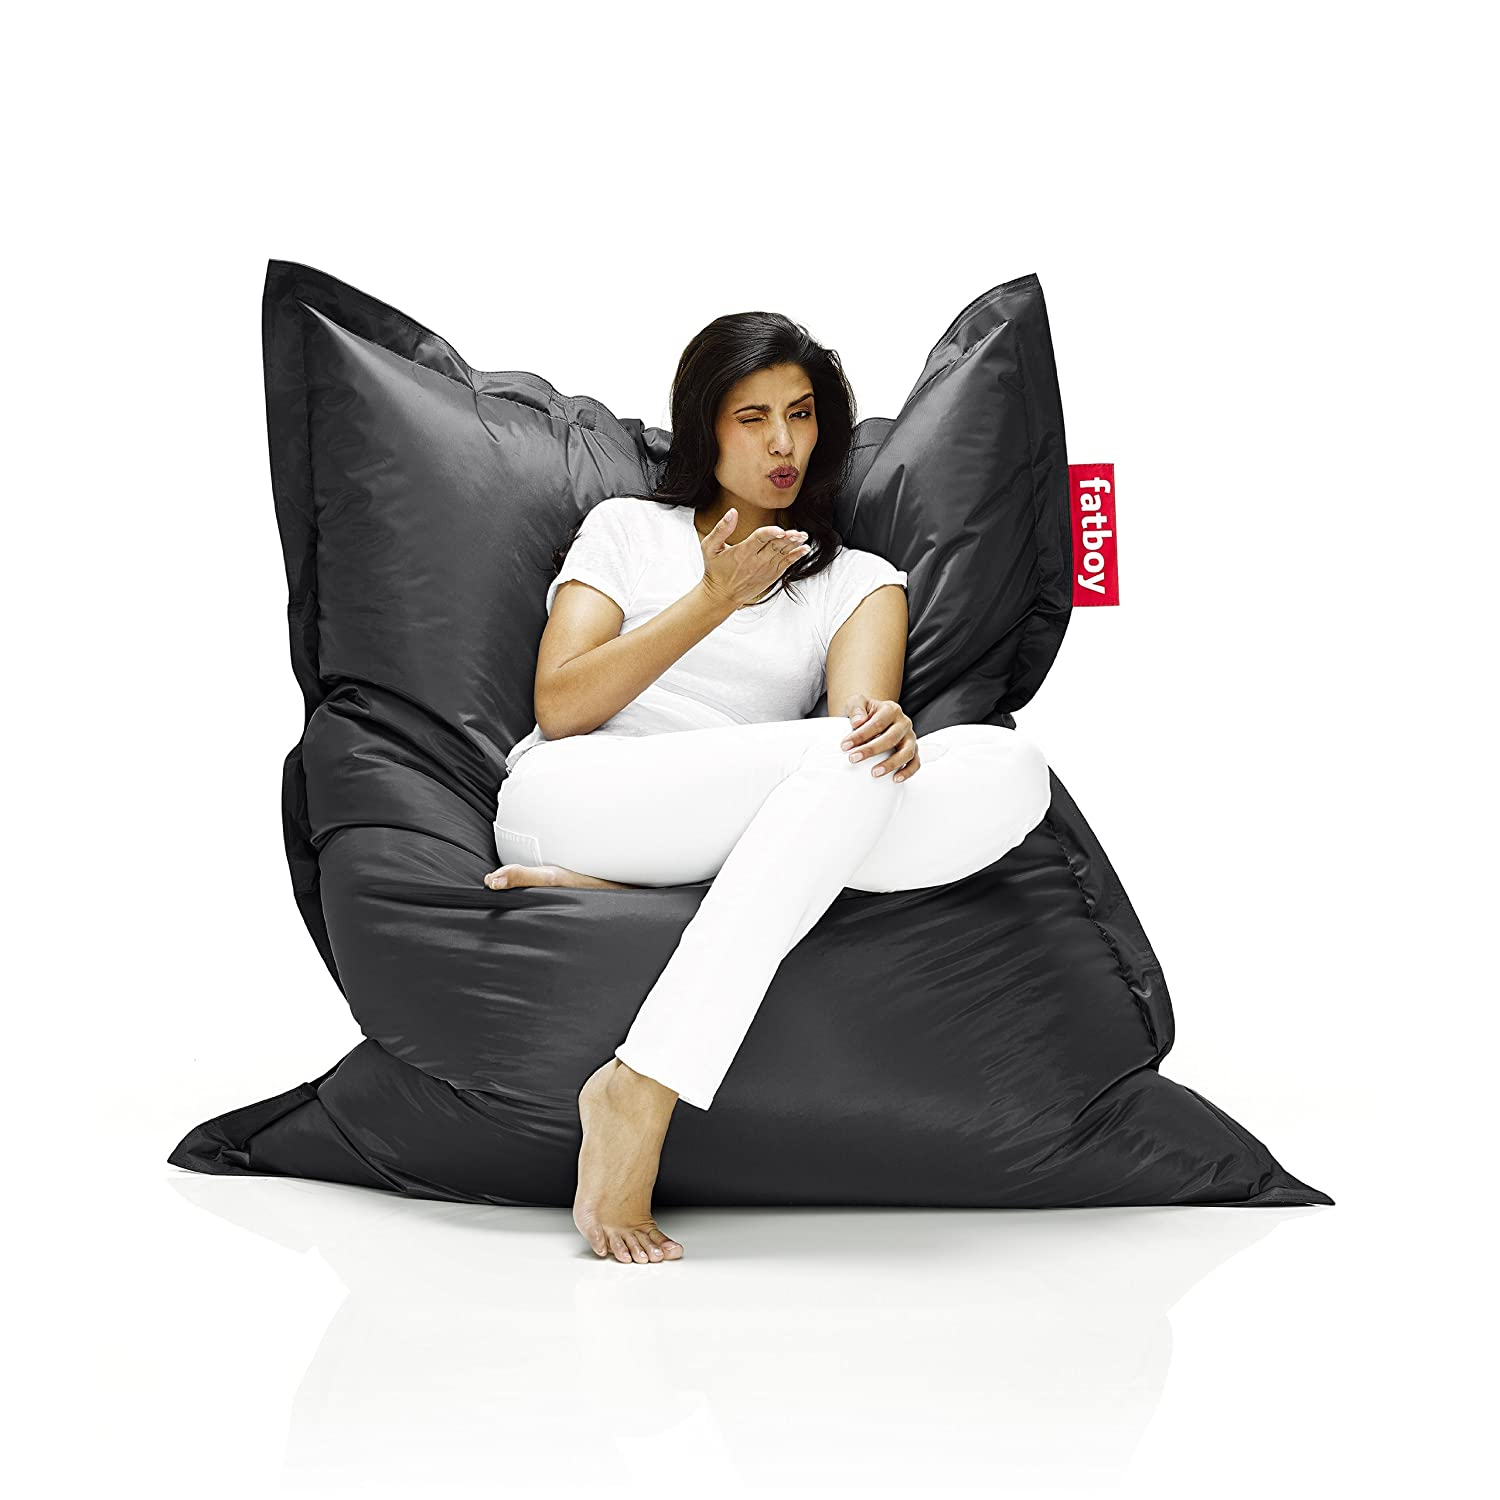 Fatboy The Original Bean Bag, Black